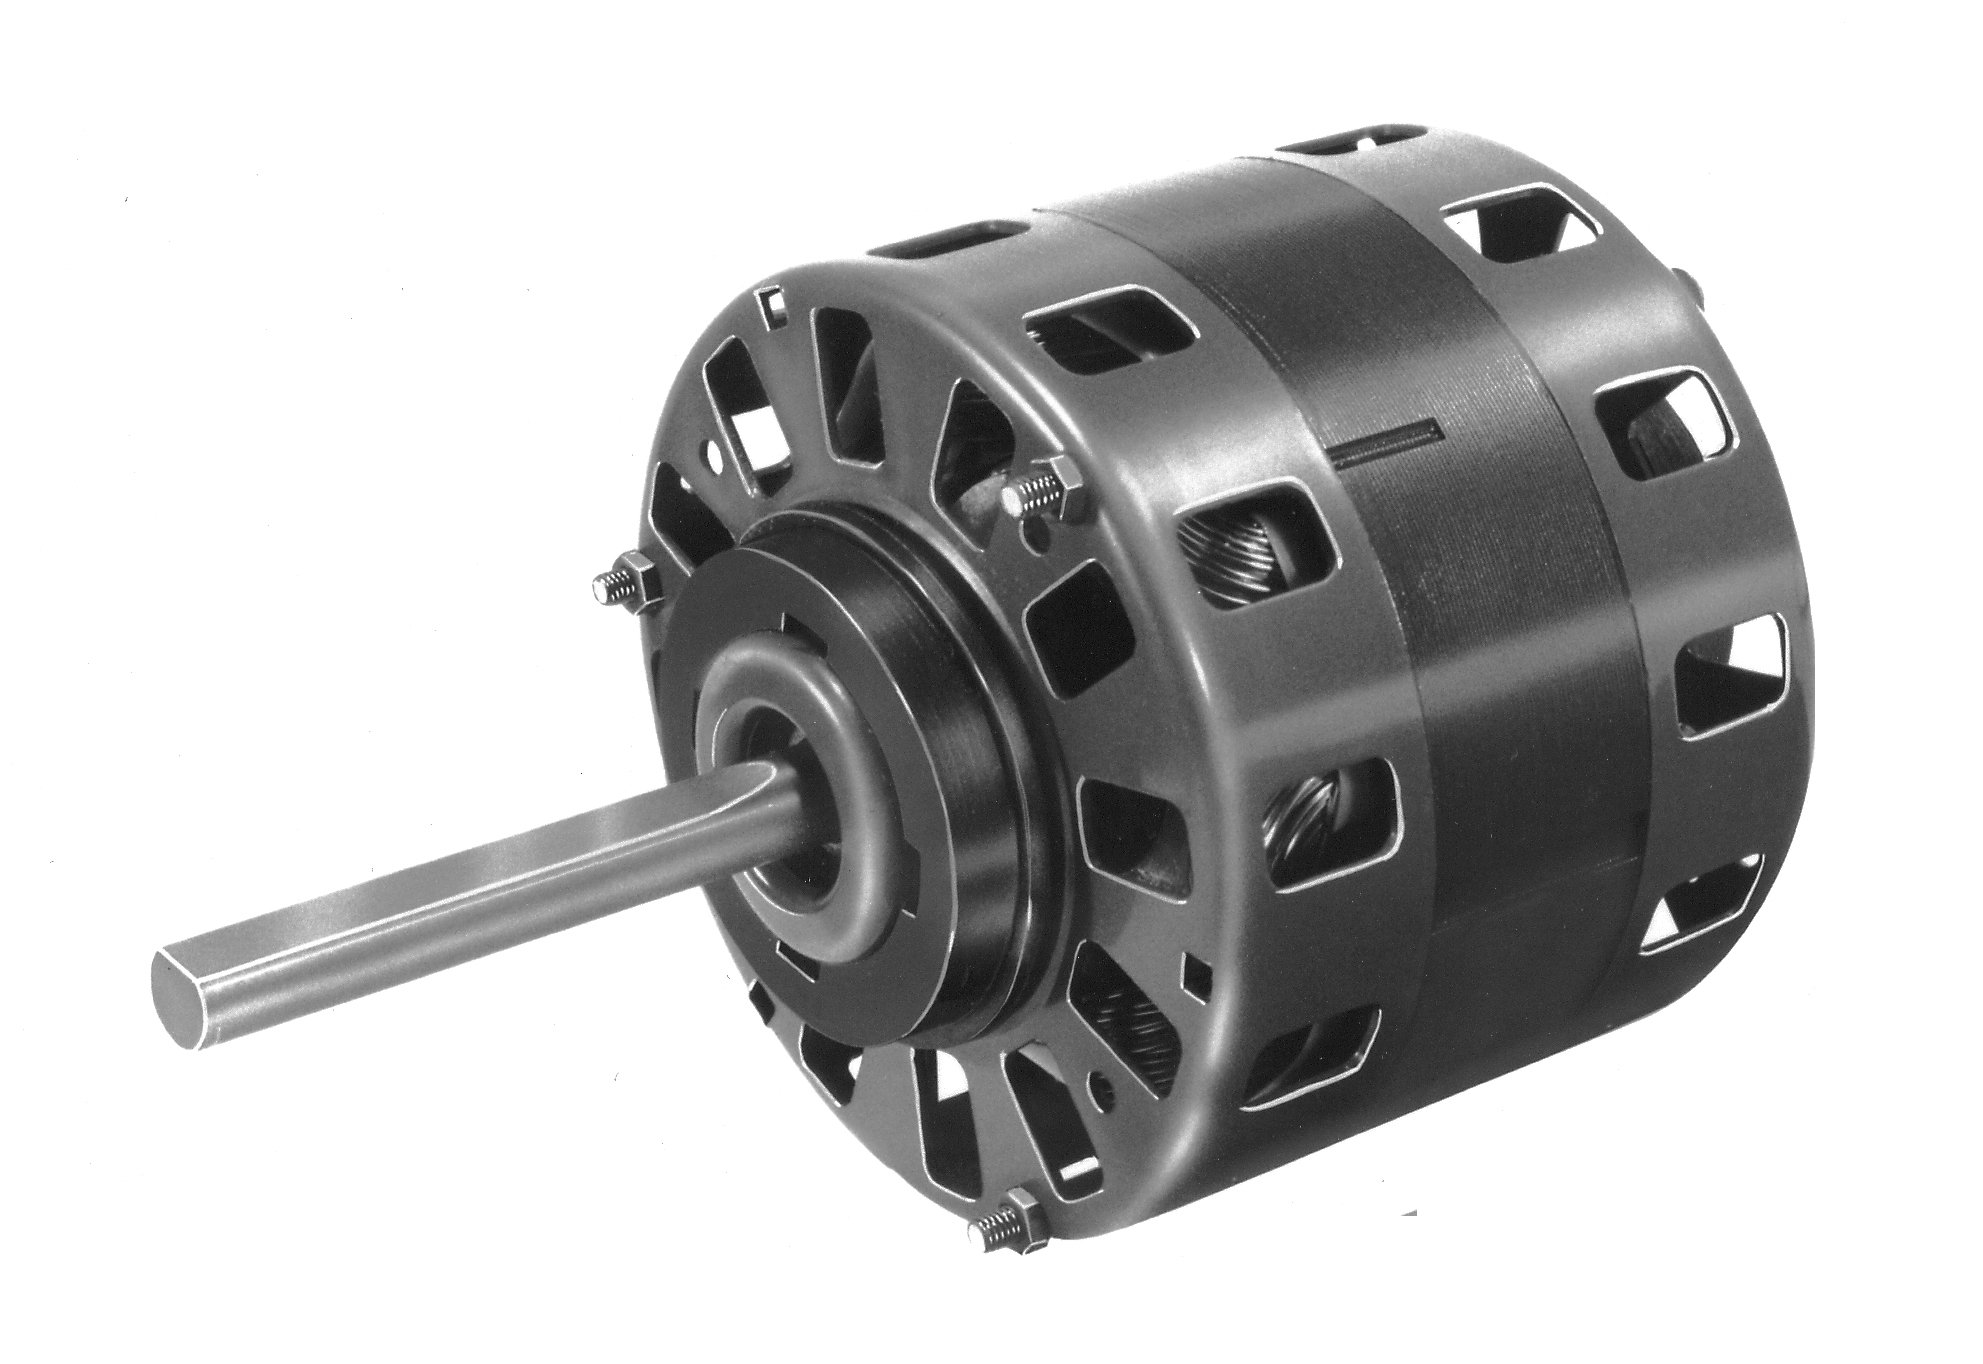 Fasco D156 5'' Frame Open Ventilated Shaded Pole Direct Drive Blower Motor with Sleeve Bearing, 1/6HP, 1050rpm, 115V, 60Hz, 6.6 amps